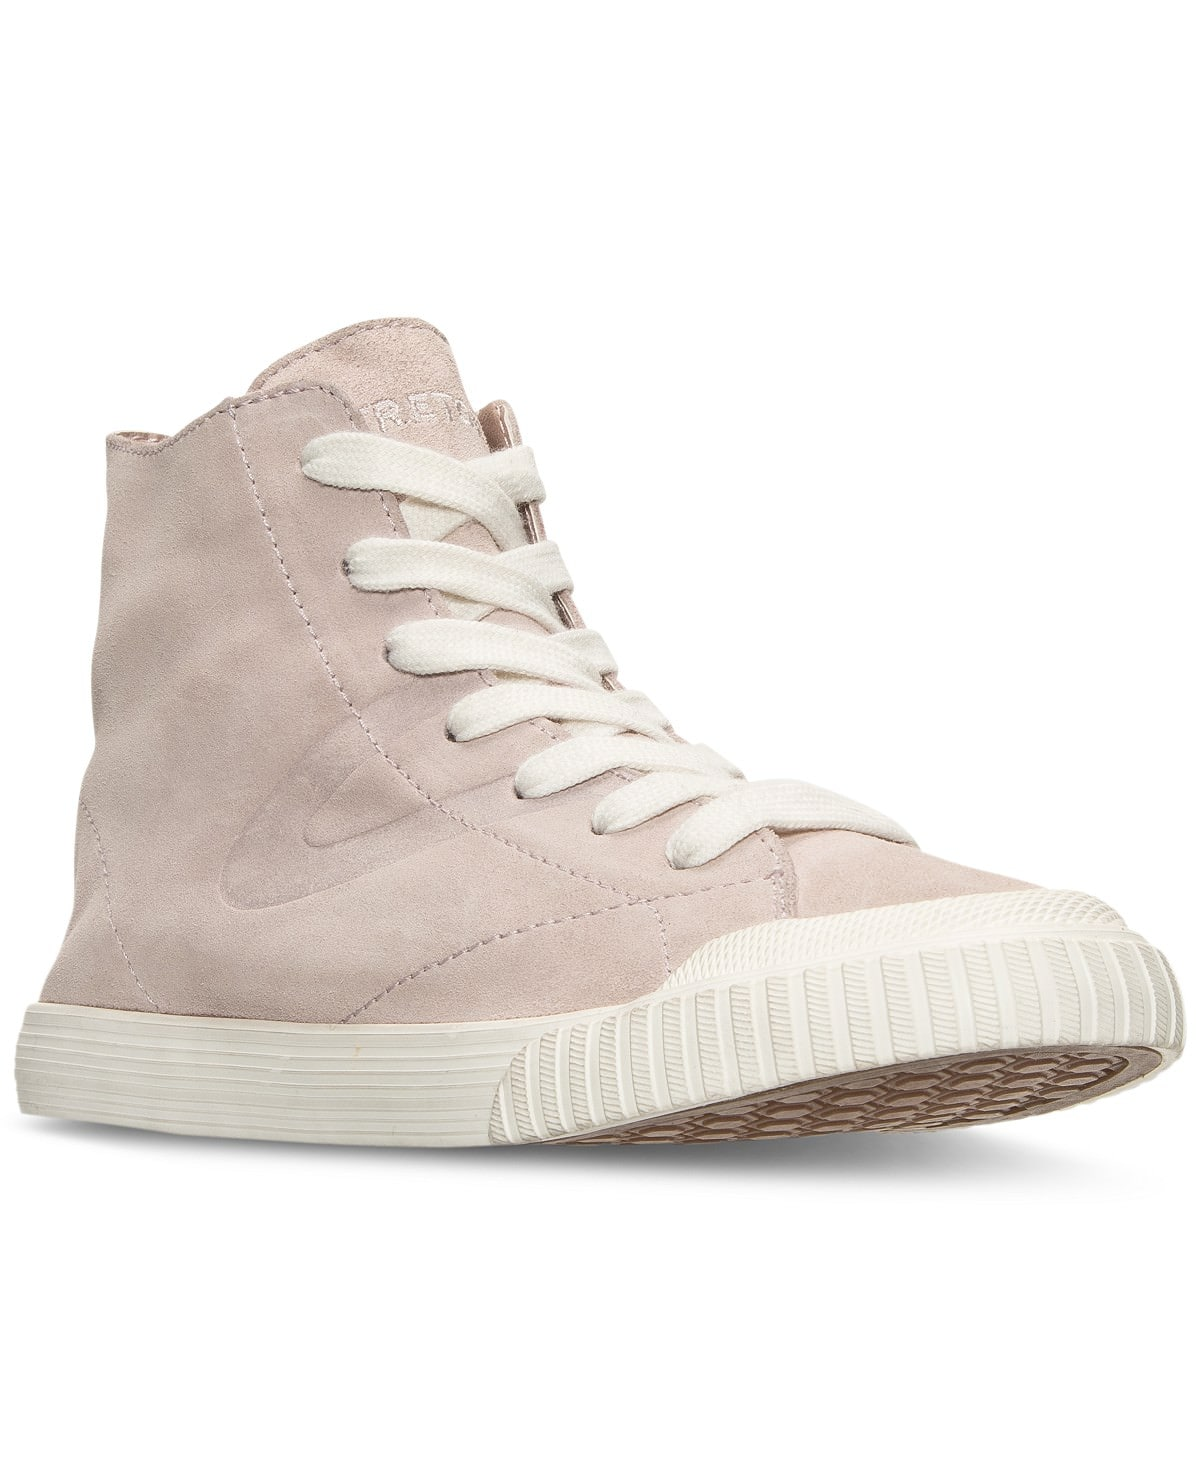 Tretorn Women's Marley 2 High Suede High Top Casual Sneaker $22.50, More + $3 shipping